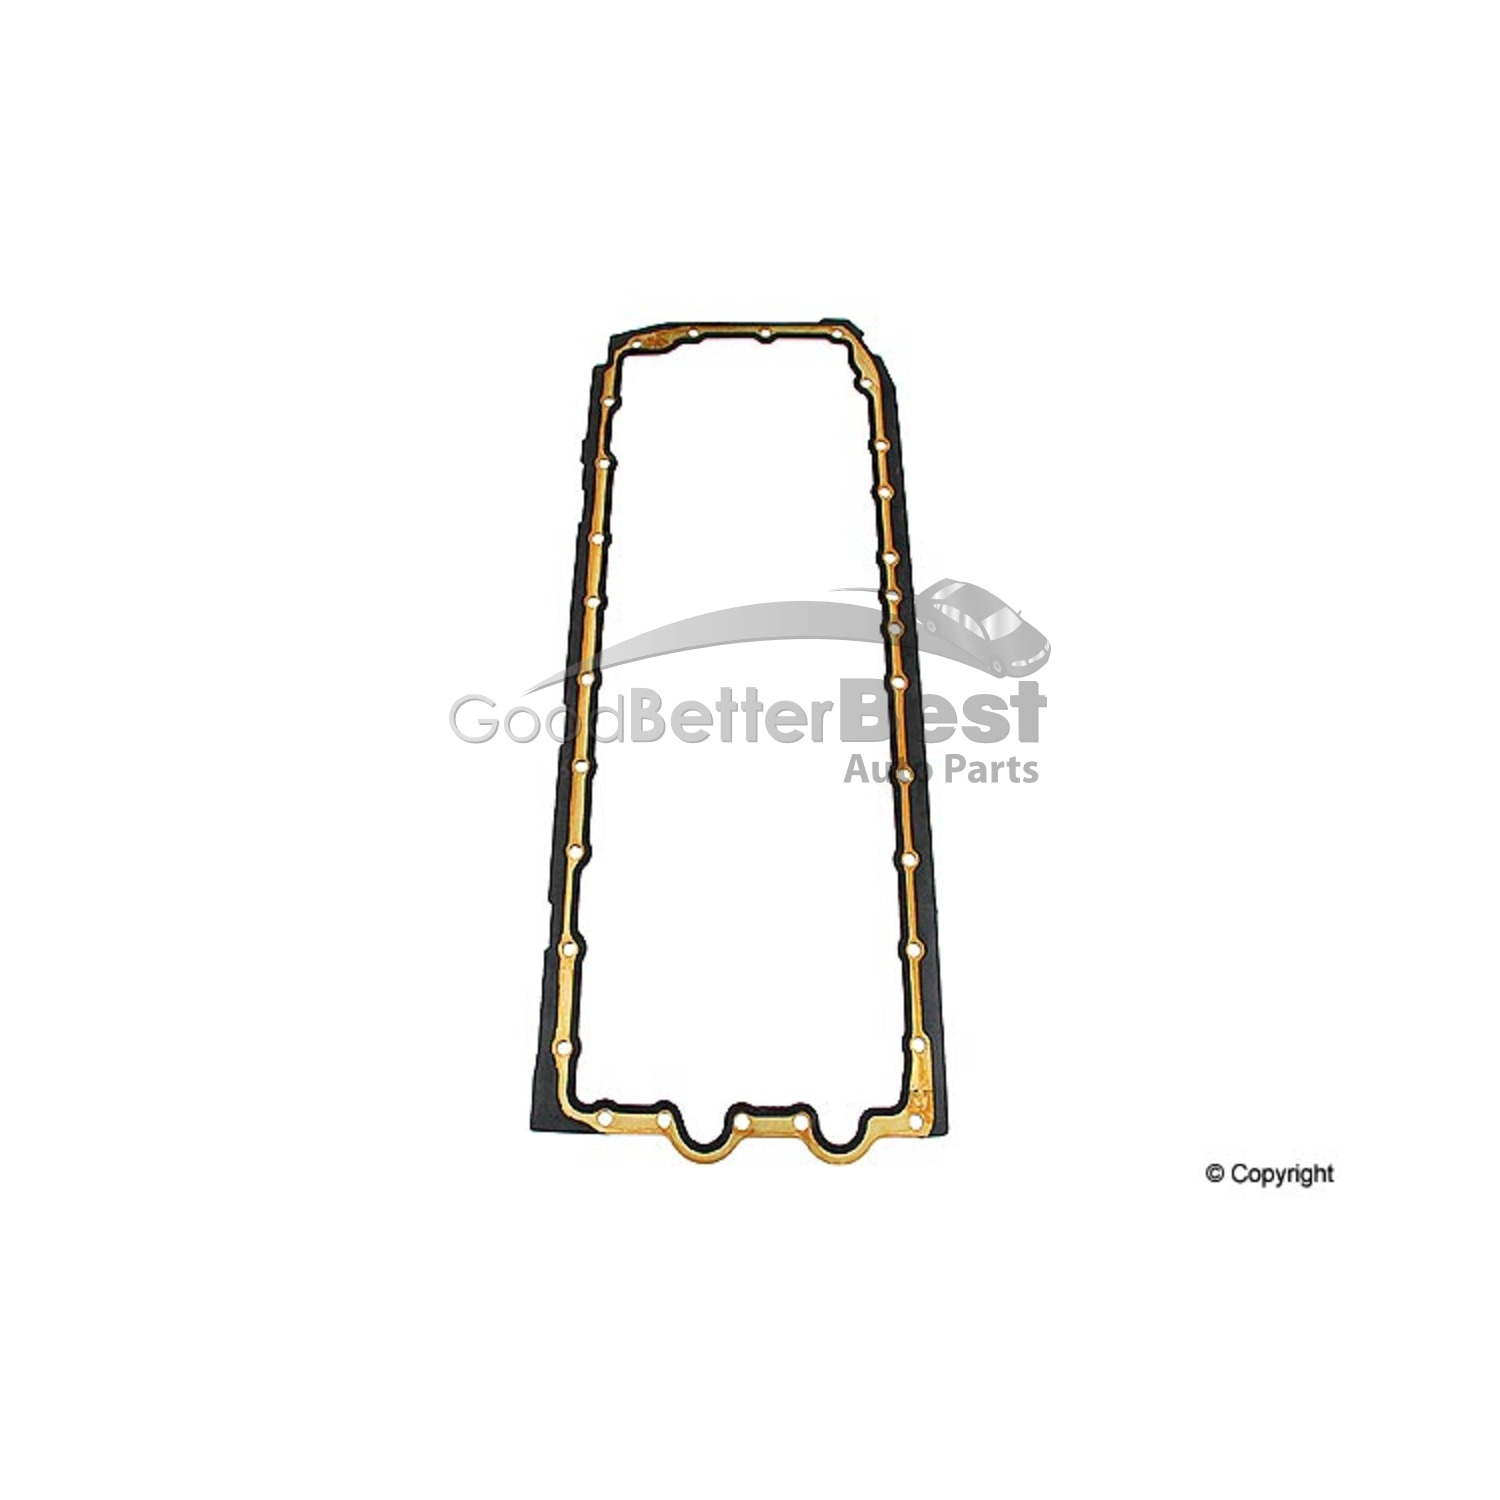 New Victor Reinz Engine Oil Pan Gasket